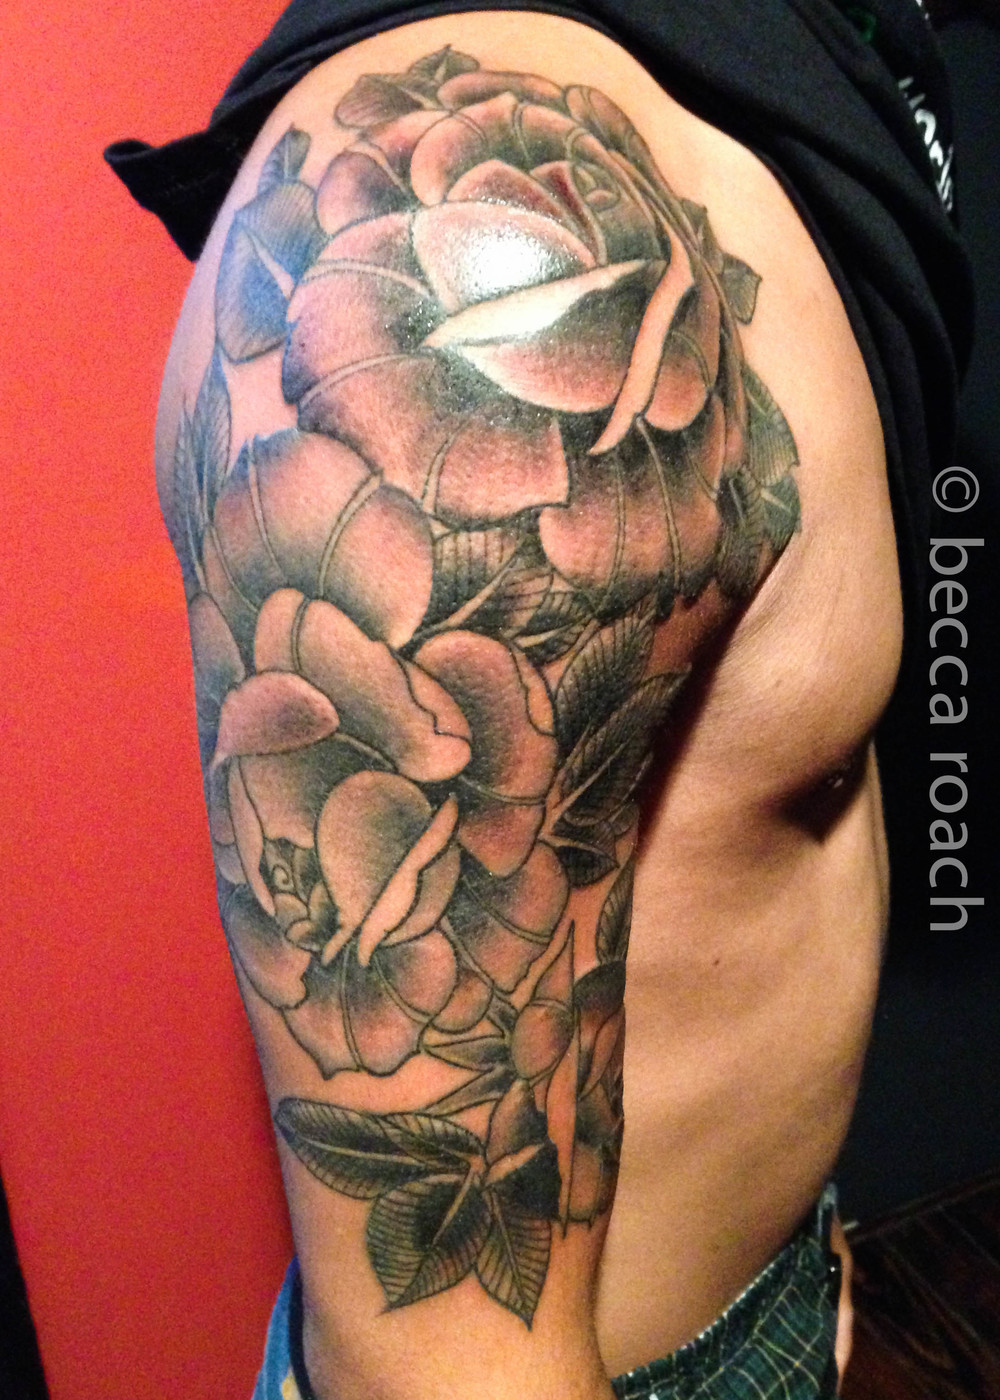 Becca Roach Black and Grey Rose Sleeve.jpg